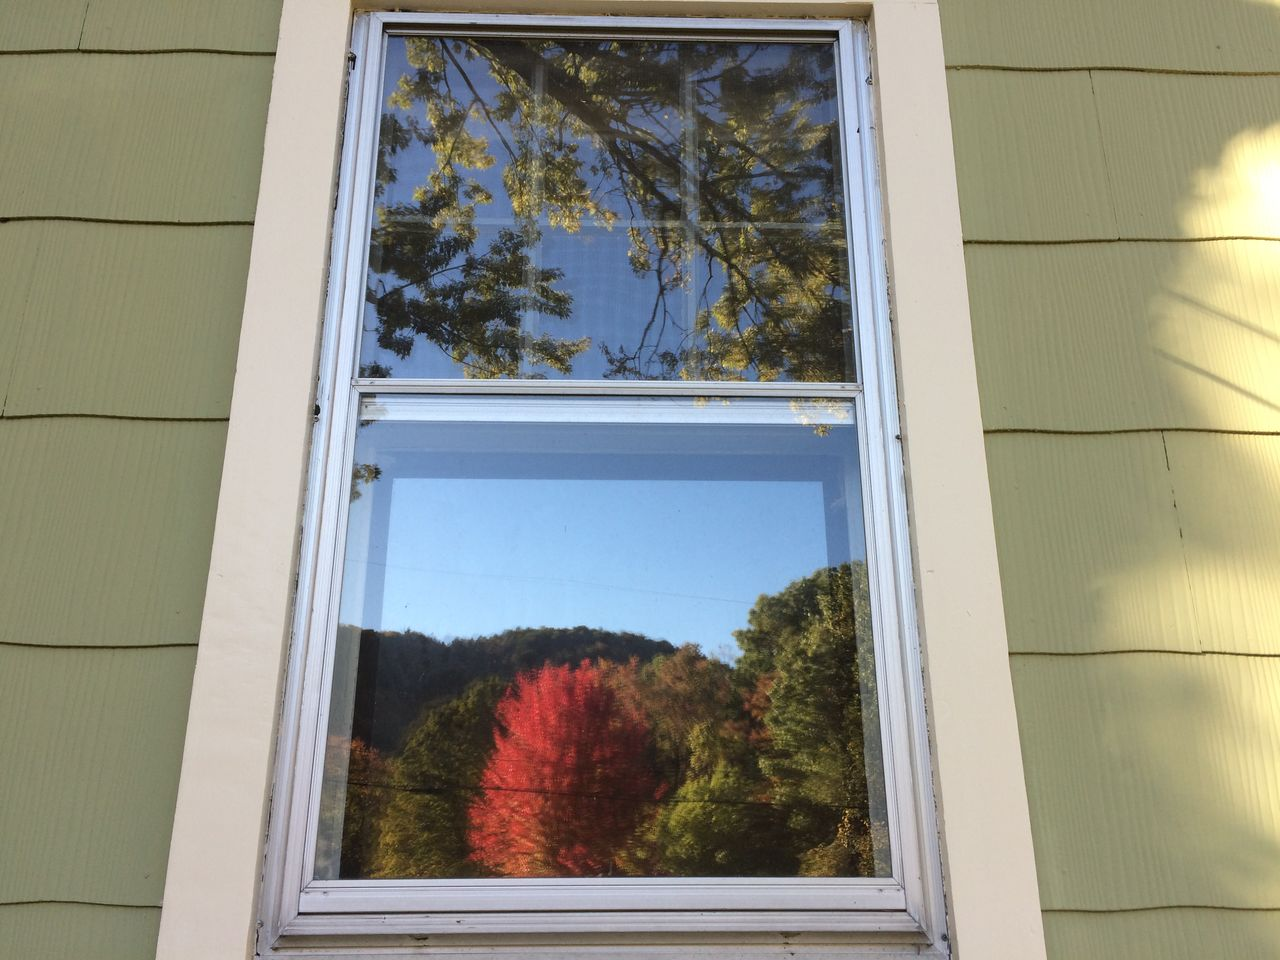 REFLECTION OF TREES IN FRONT OF WINDOW GLASS